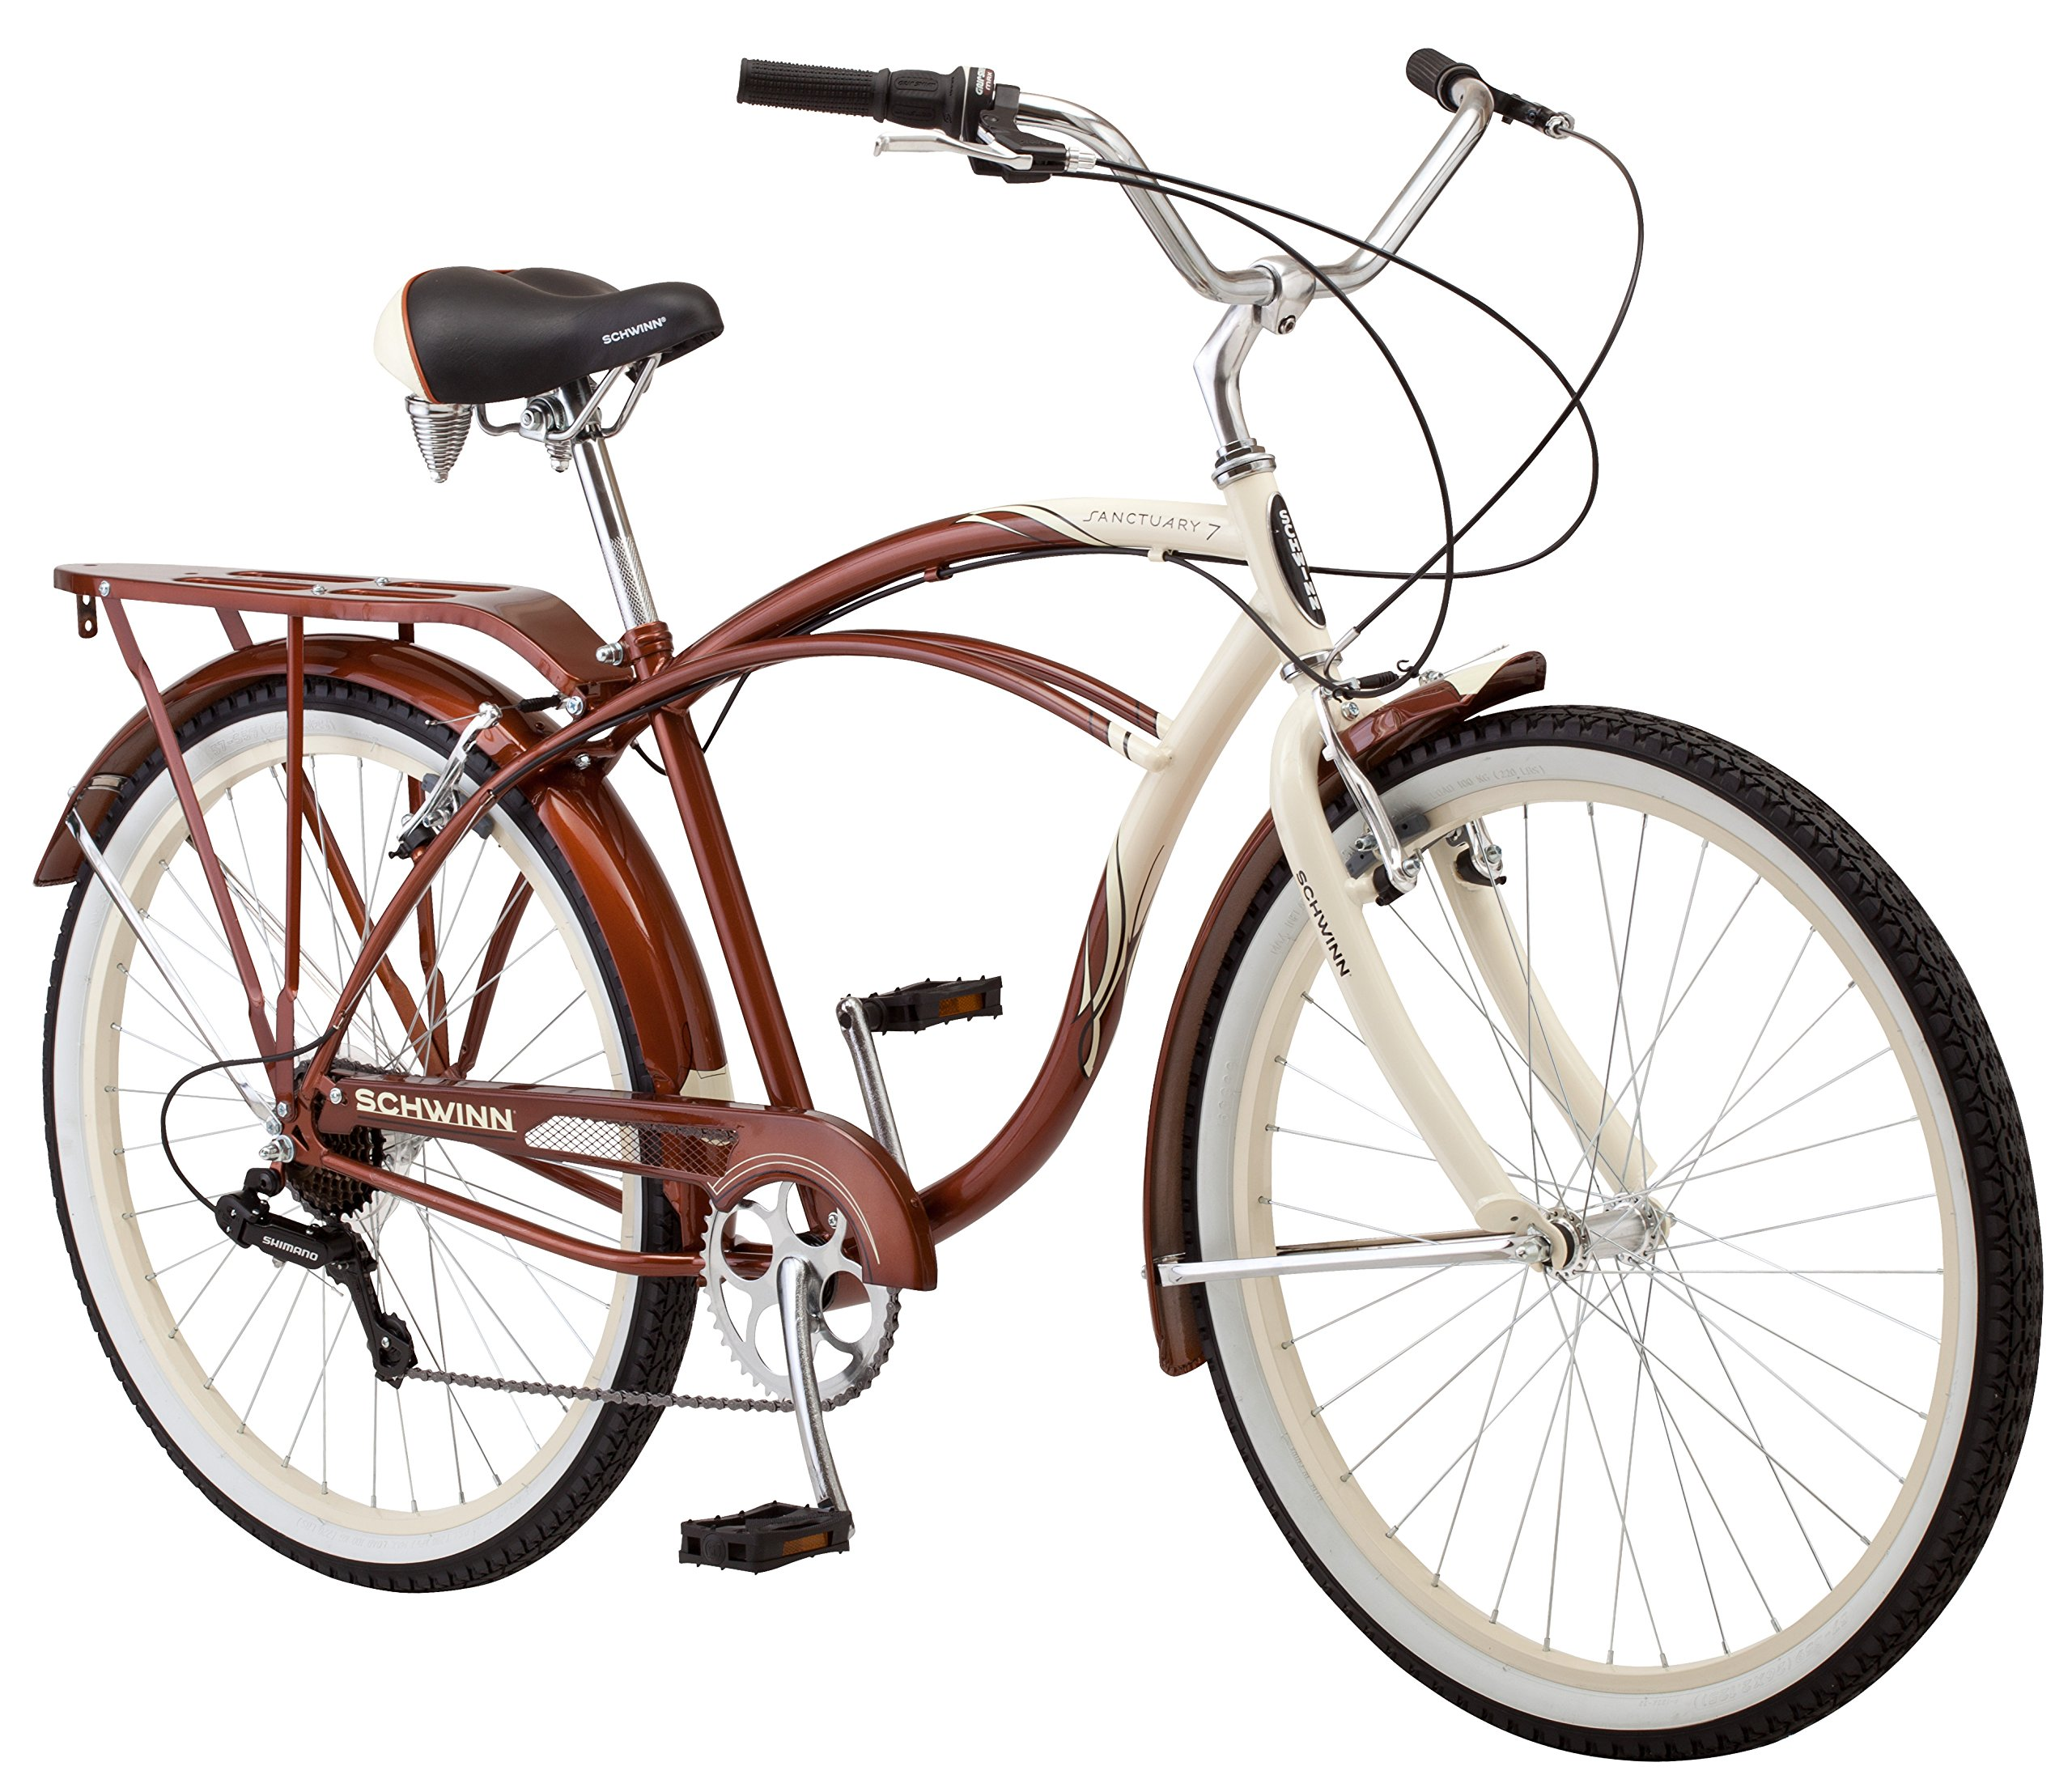 113bd4feea8 Get Quotations · Schwinn Men's Sanctuary 7-Speed Cruiser Bicycle (26-Inch  Wheels), Cream